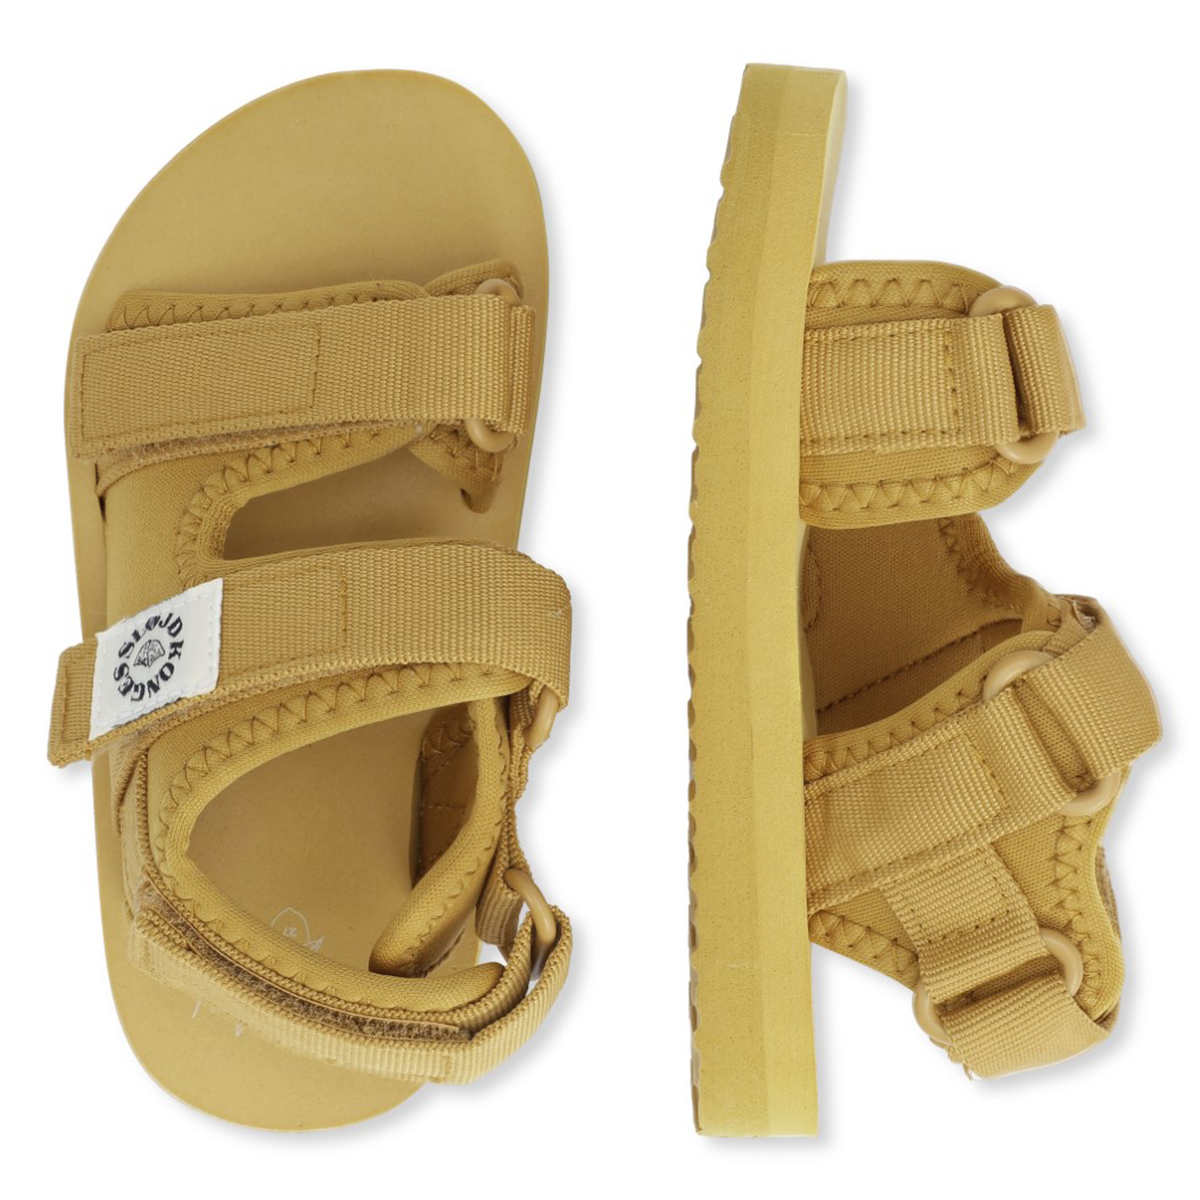 Chaussons & Chaussures Sandales Sun Mustard Gold - 22 Sandales Sun Mustard Gold - 22